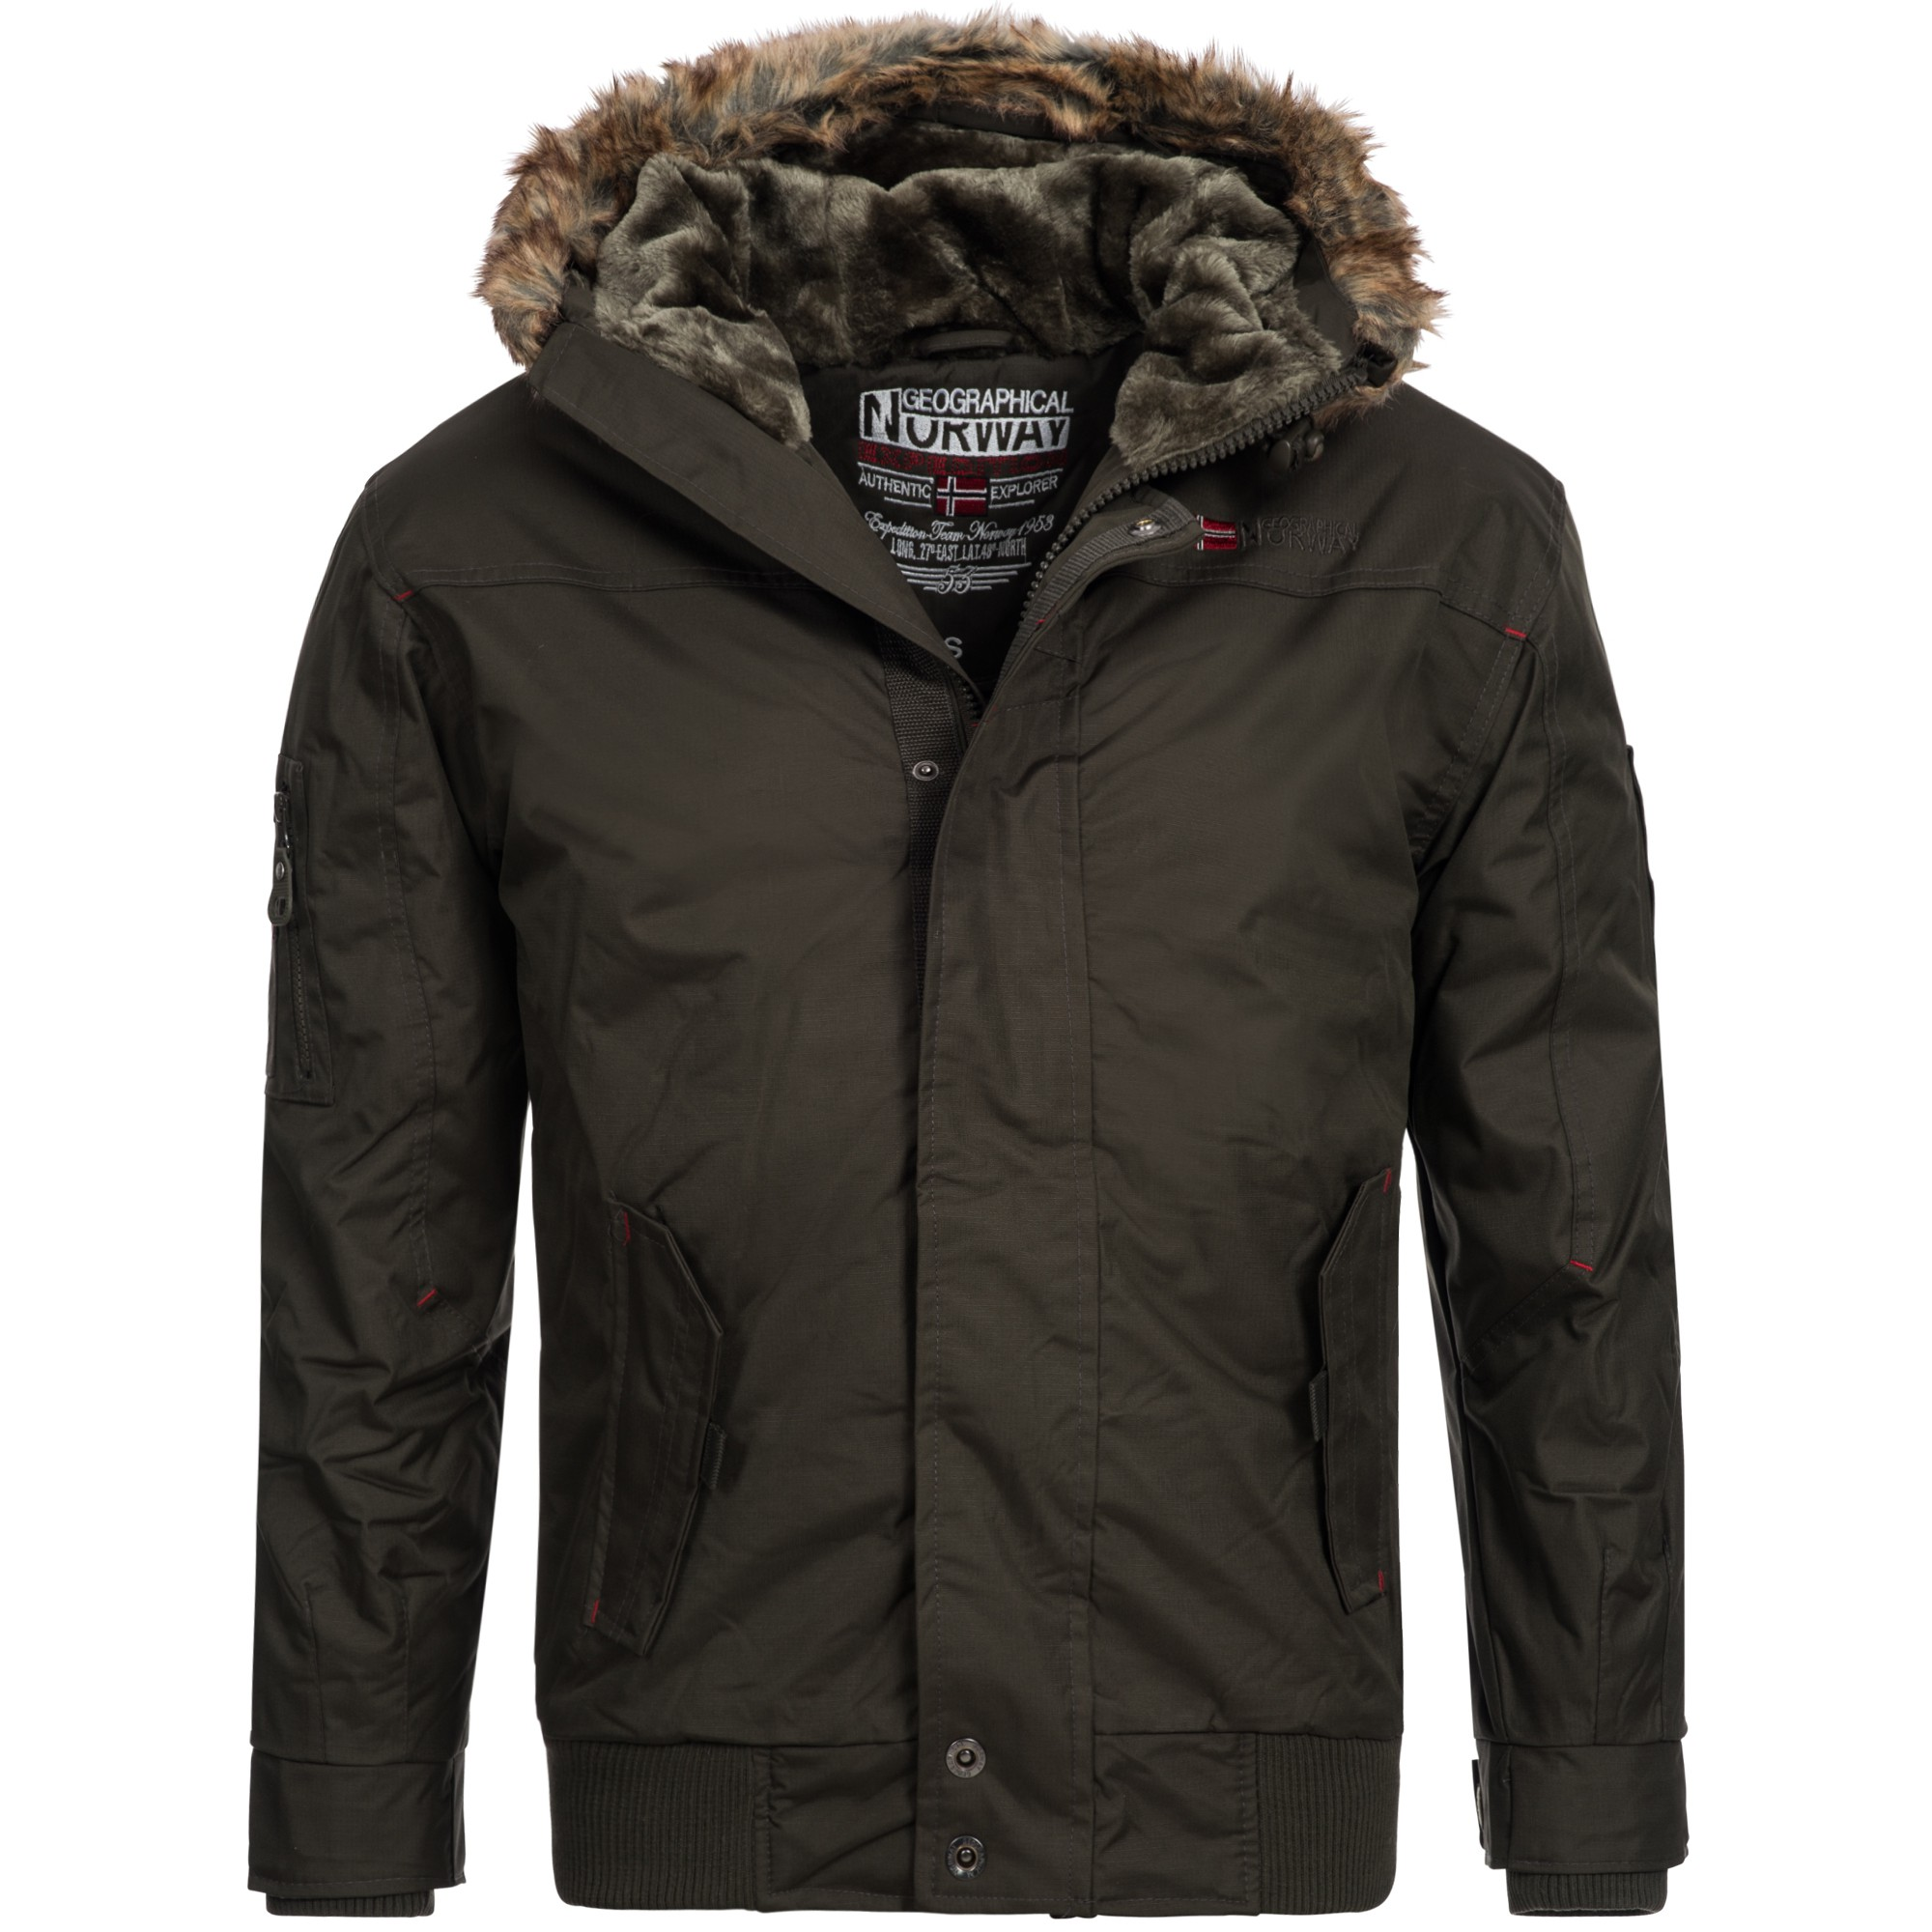 geographical norway artic herren winterjacke jacke parka gr s xxxl ebay. Black Bedroom Furniture Sets. Home Design Ideas